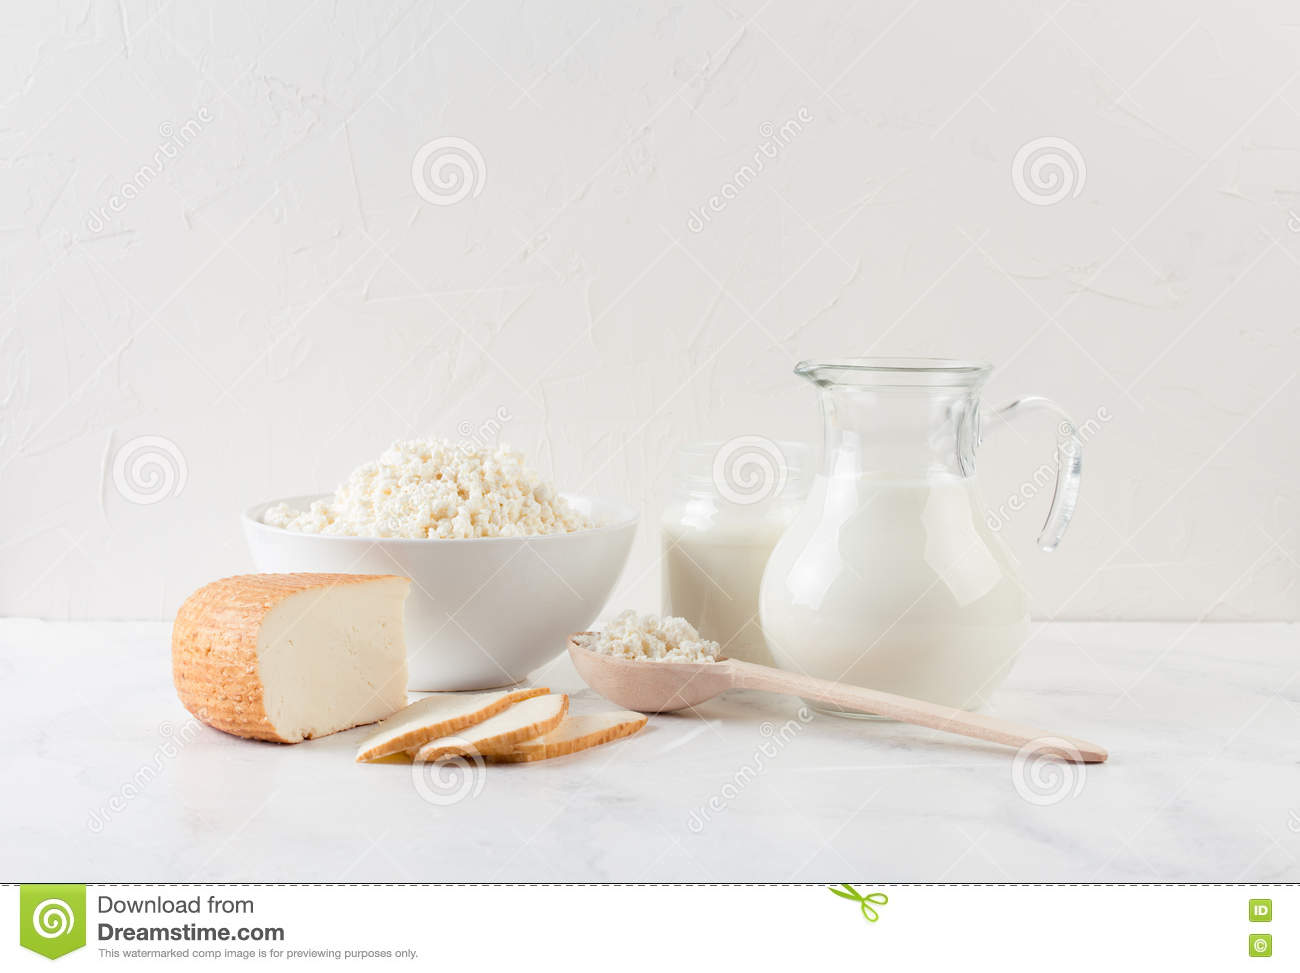 Fresh Dairy Products Stock Photo - Image: 72900787